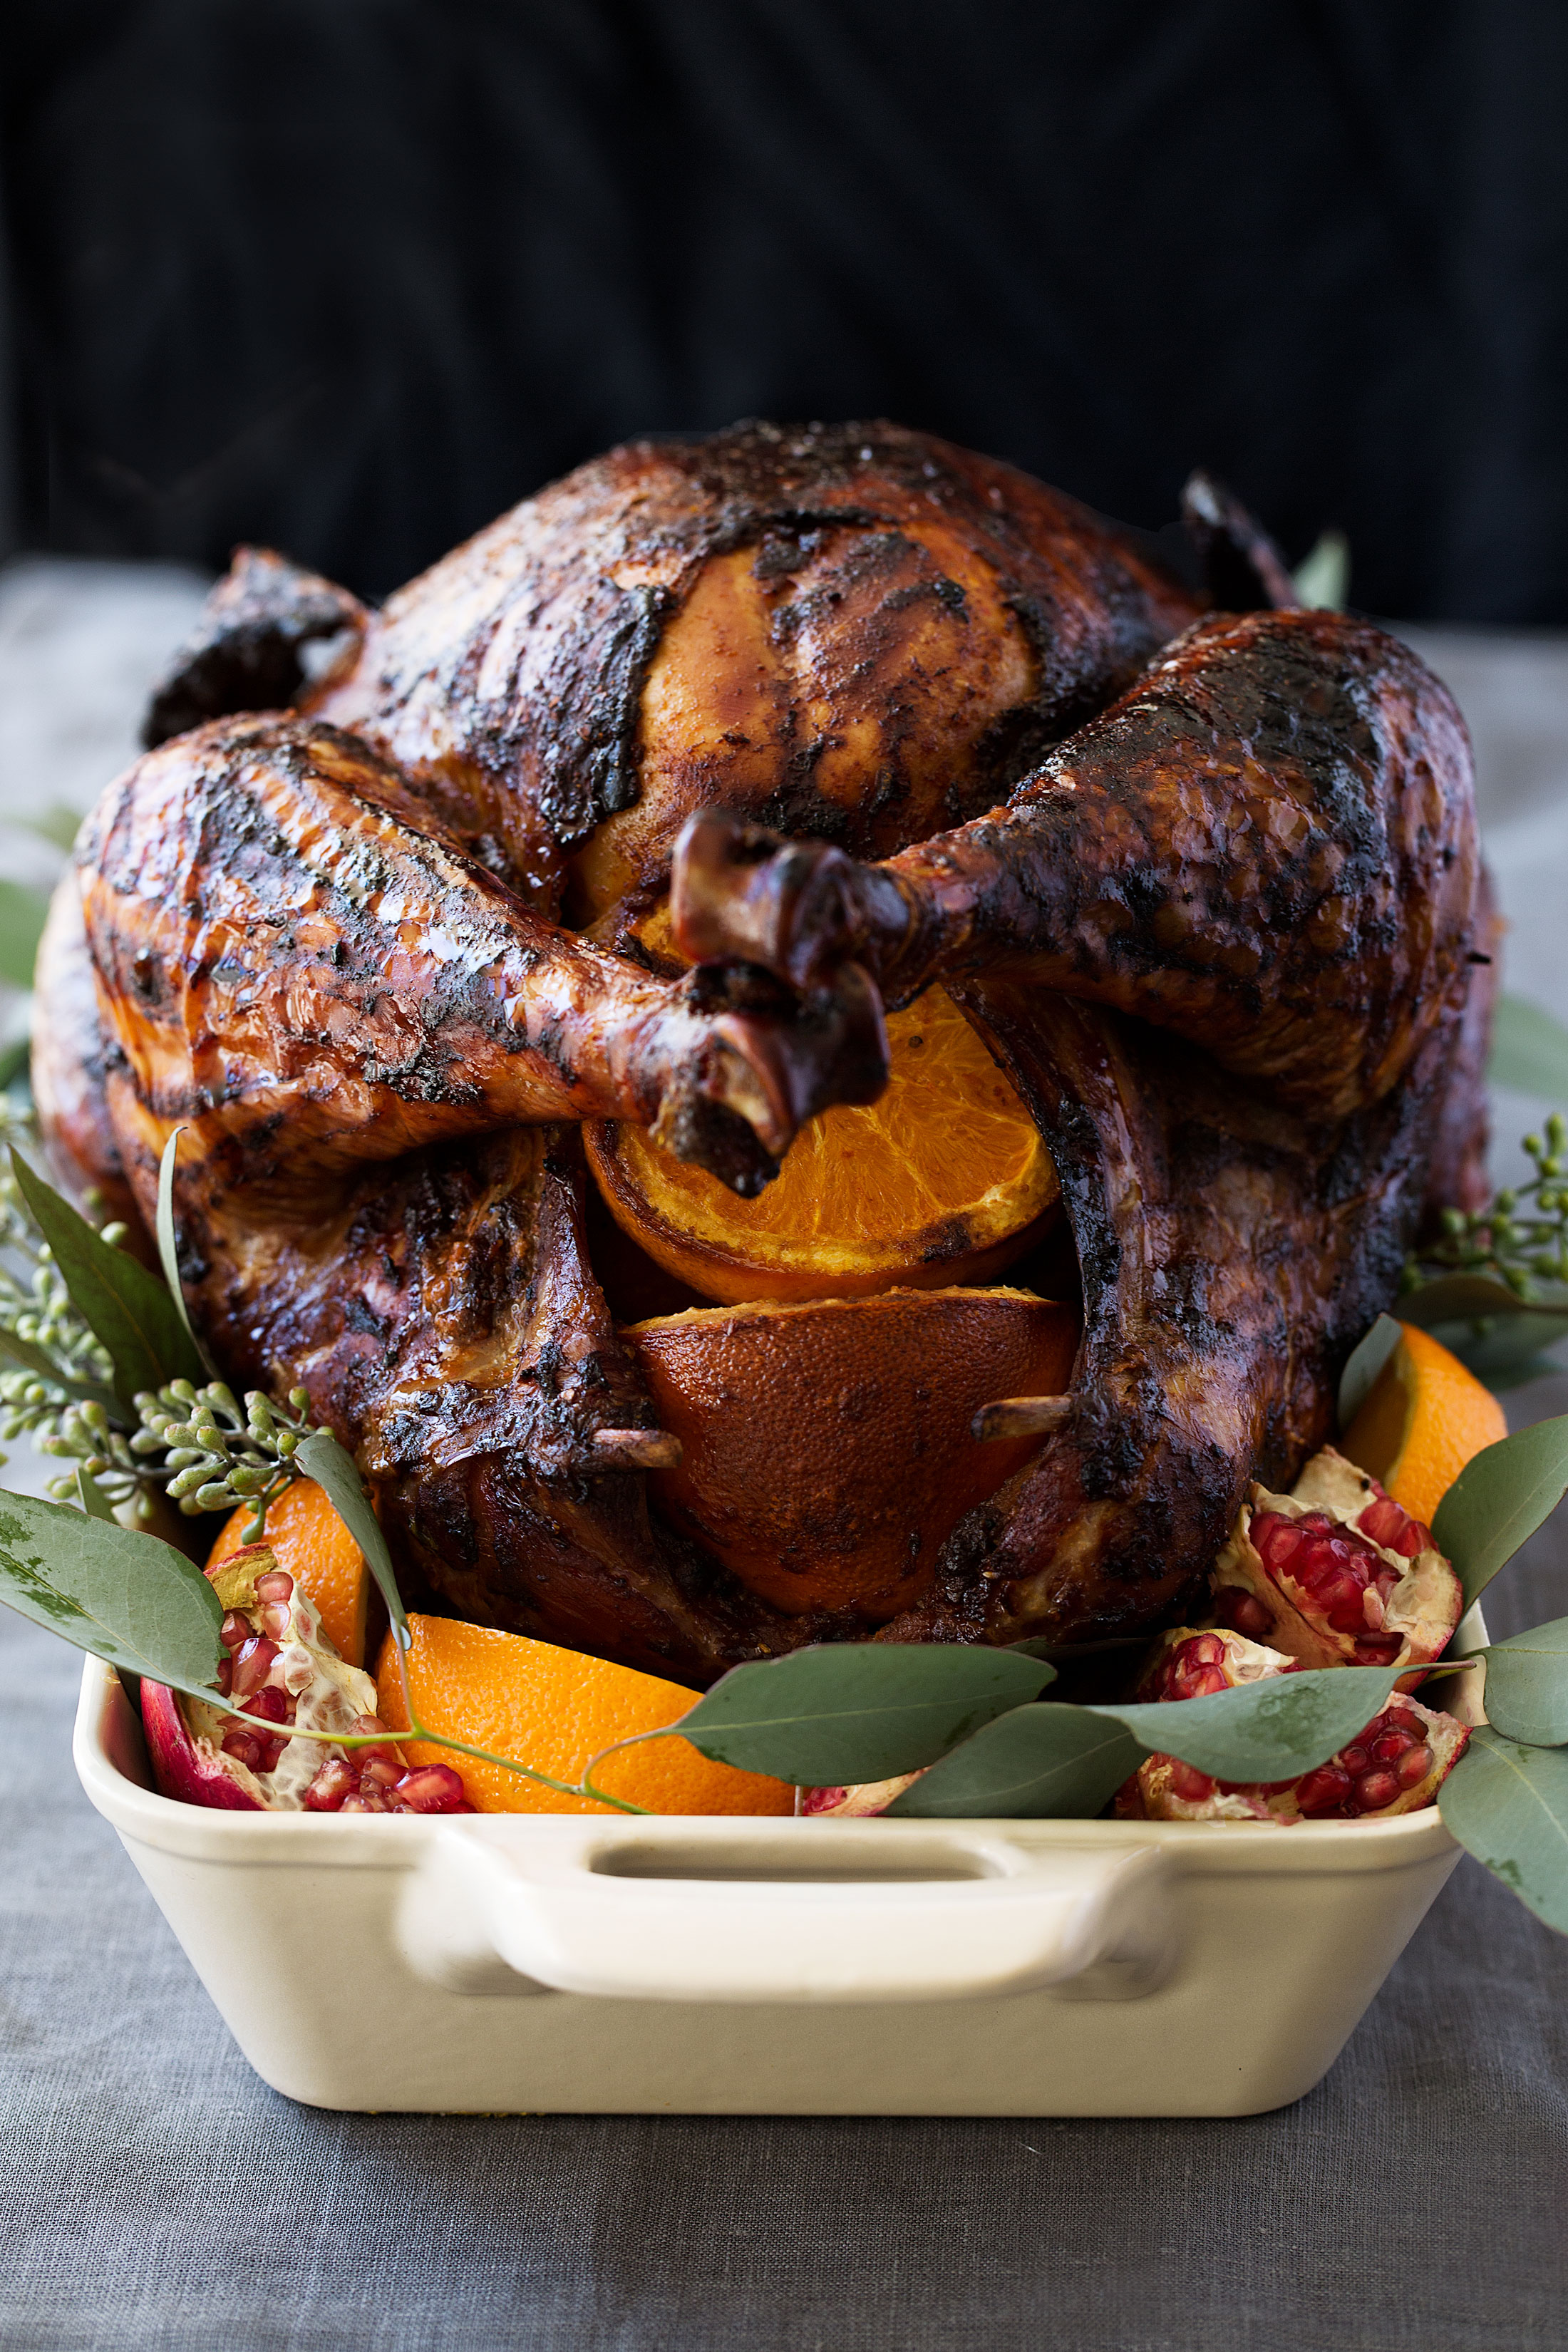 chili rubbed turkey with orange cooking with cocktail rings home depot ingredients